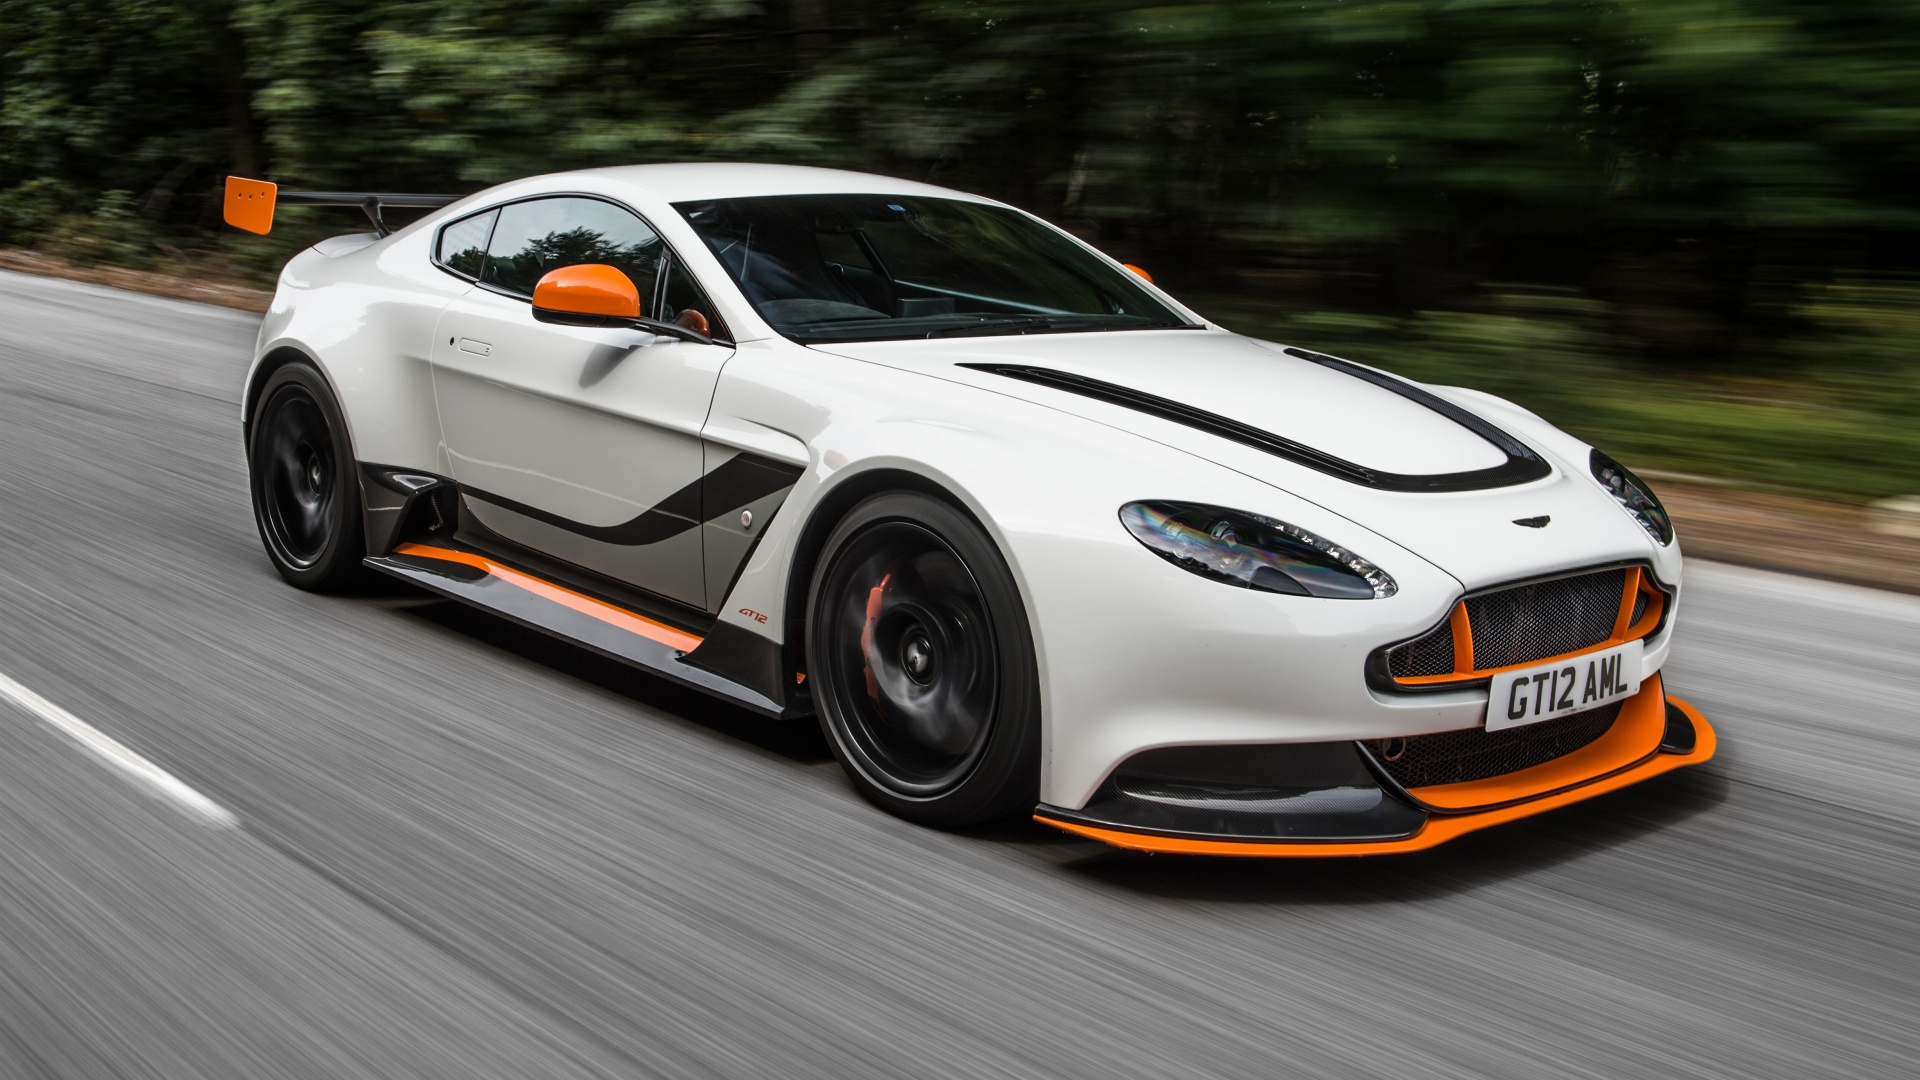 2015 Aston Martin Vantage Wallpaper HD Car Wallpapers 1920x1080